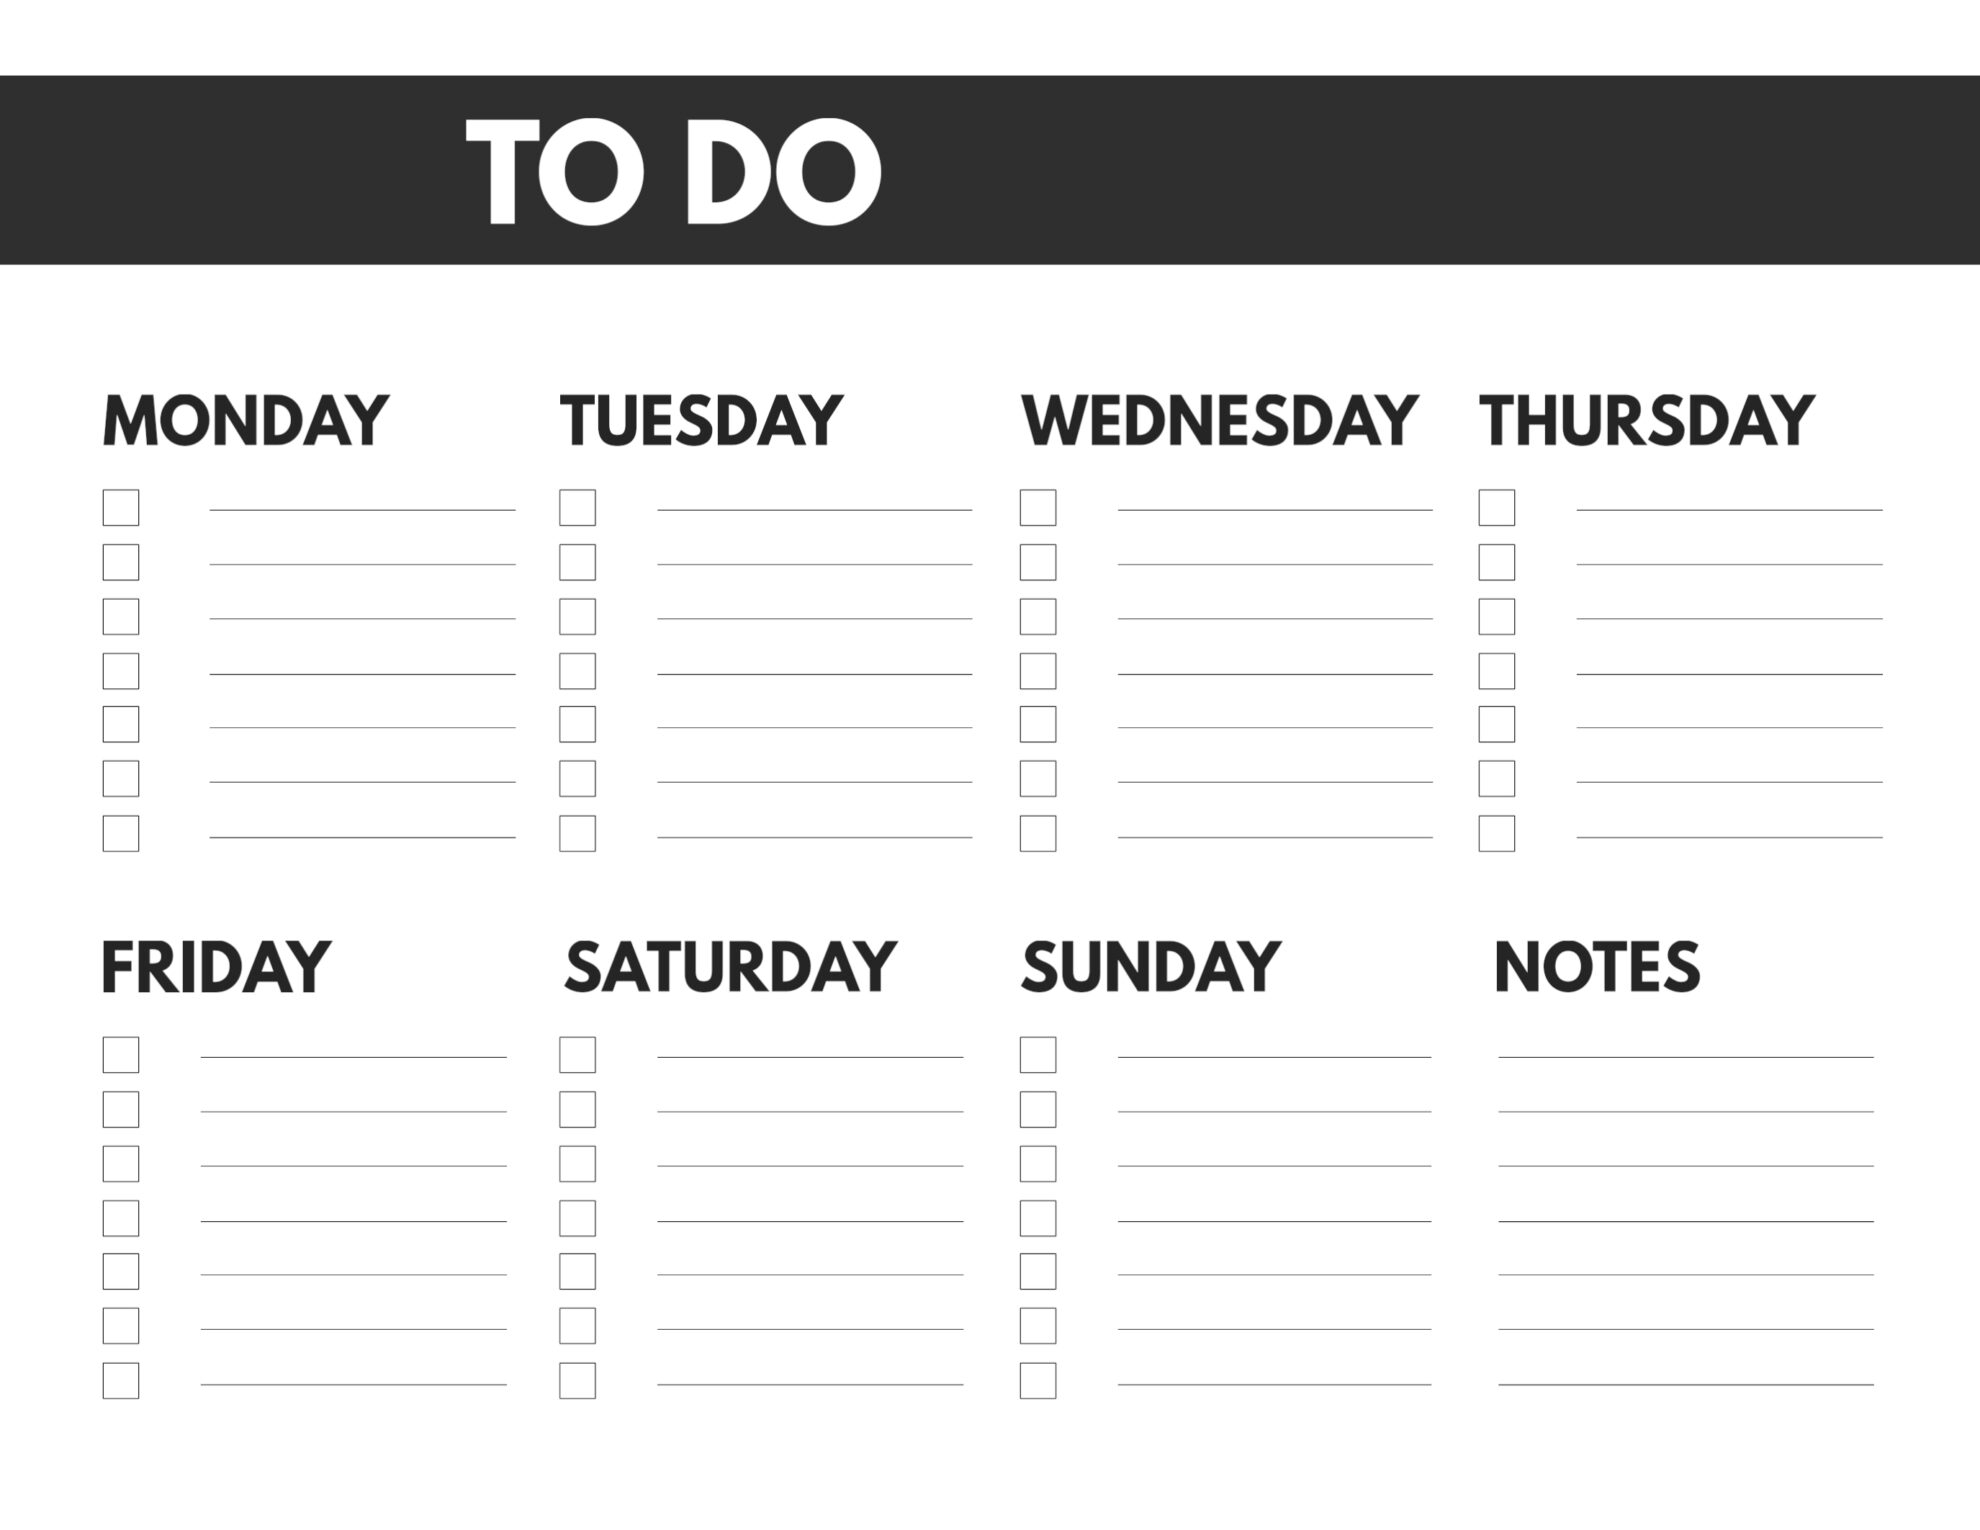 Free Printable Weekly To Do List - Paper Trail Design pertaining to Printable To Do Monday To Friday